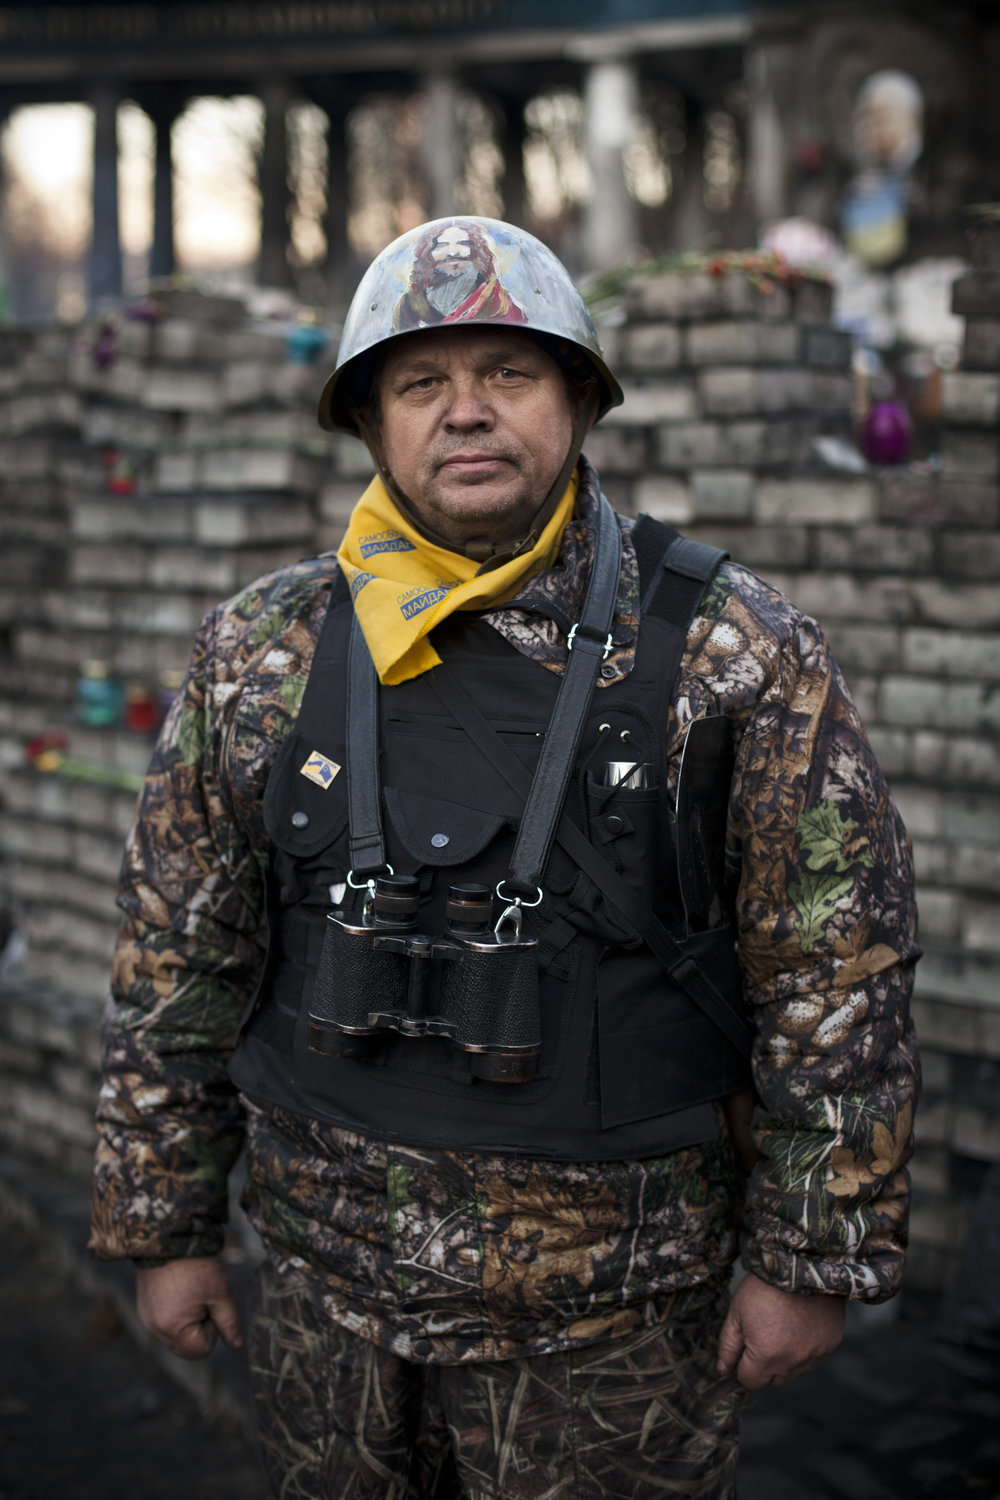 A member of a self defense volunteer group poses for a photograph next to a barricade located near the entrance to the Dynamo Kyiv soccer club stadium in Kiev's Independence Square, Ukraine, Wednesday, March 12, 2014. (AP Photo/David Azia)